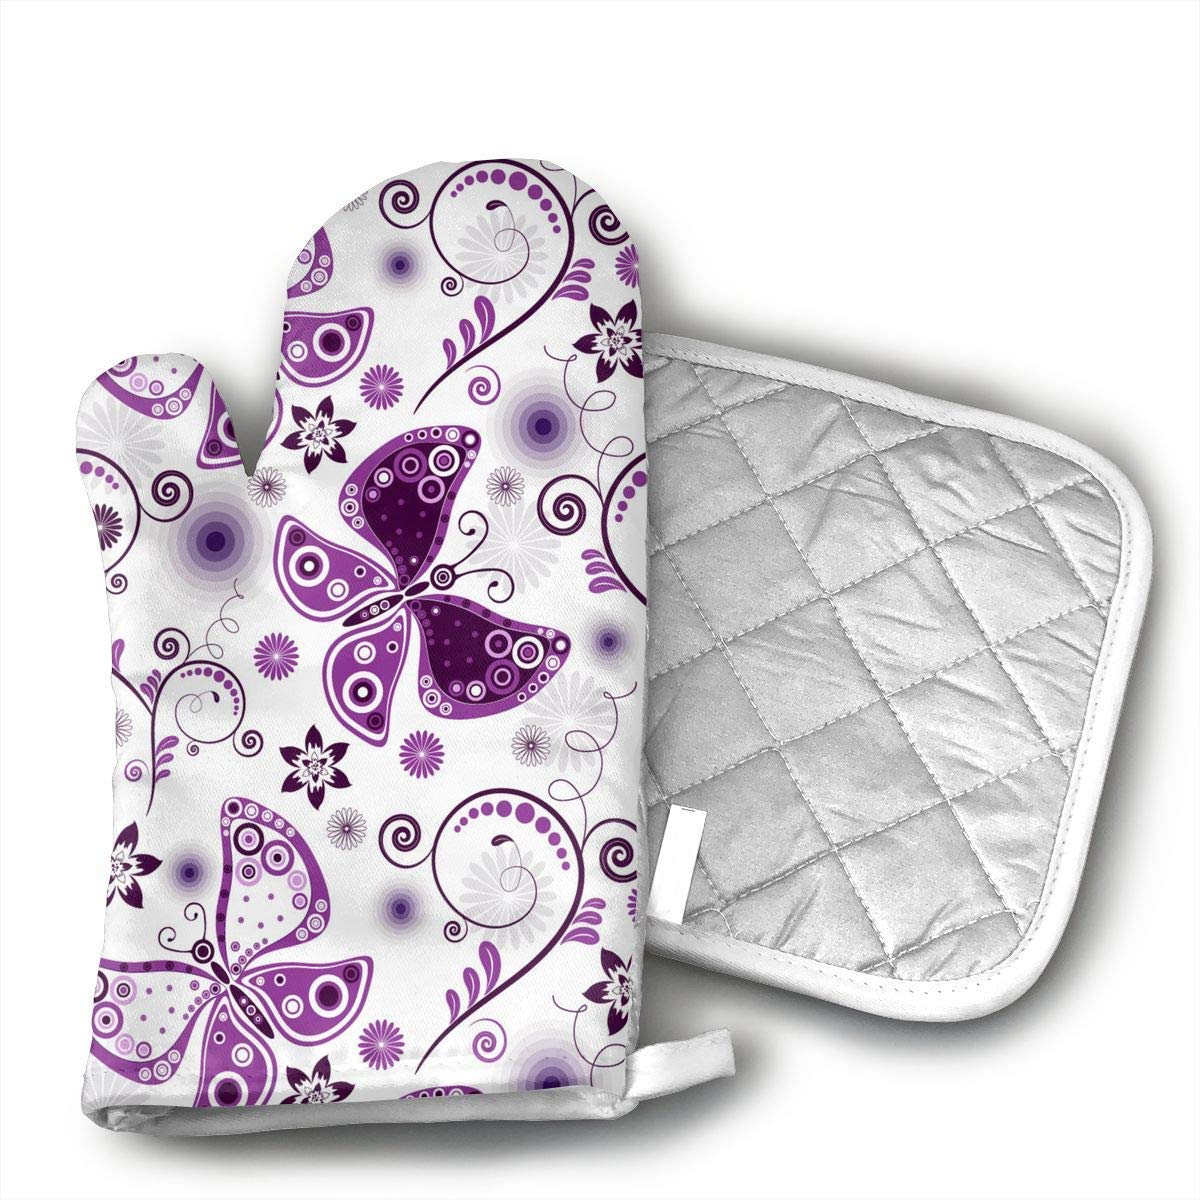 NoveltyGloves Purple Pattern Butterfly Oven Mitts,Professional Heat Resistant Microwave BBQ Oven Insulation Thickening Cotton Gloves Baking Pot Mitts Soft Inner Lining Kitchen Cooking